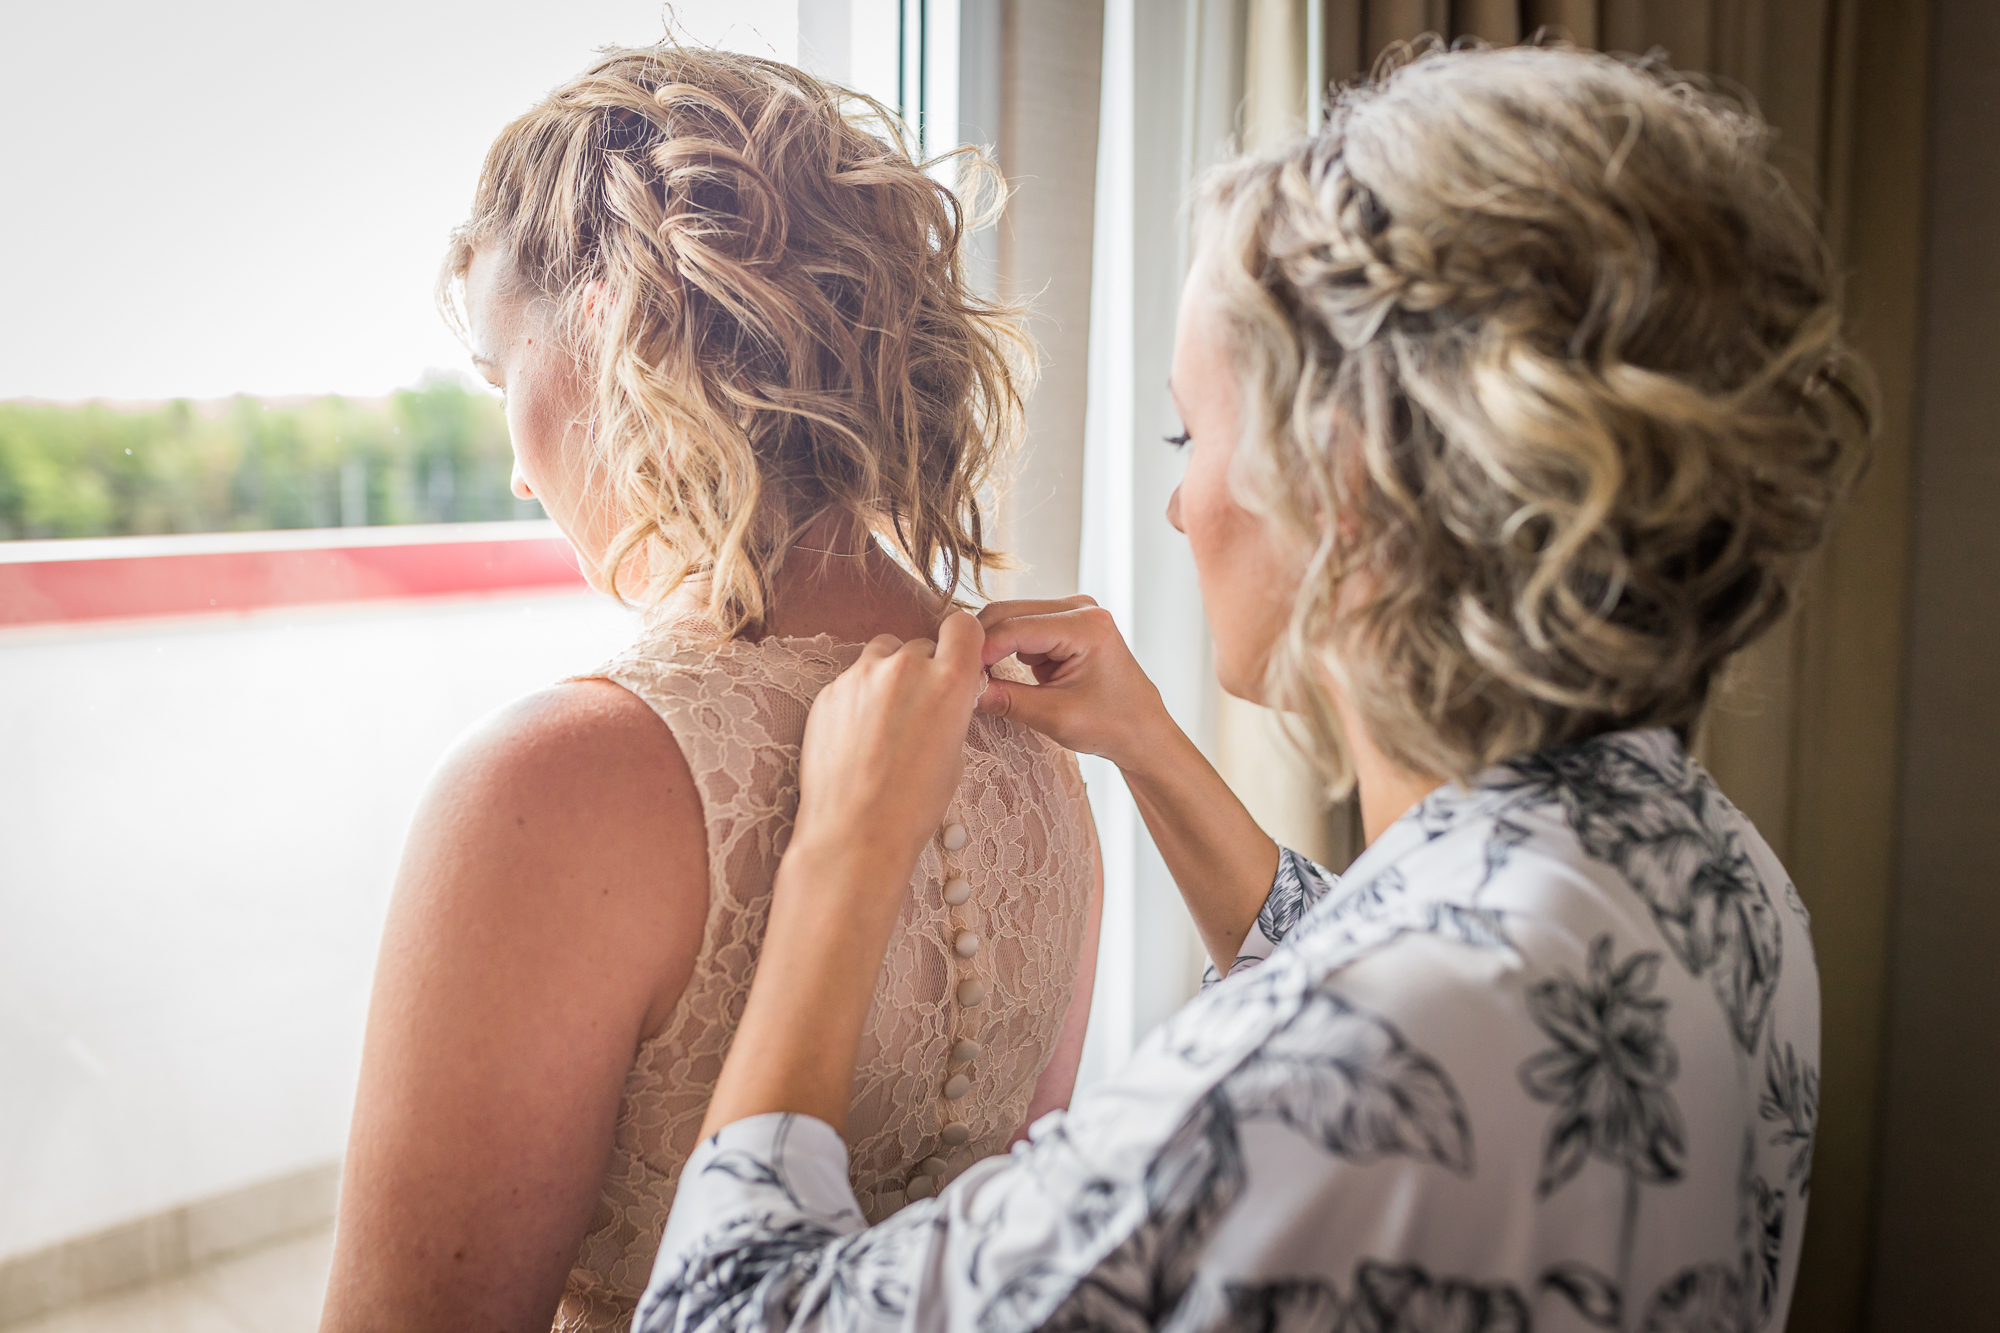 moncton wedding  photographer Tara Geldart-49.JPG